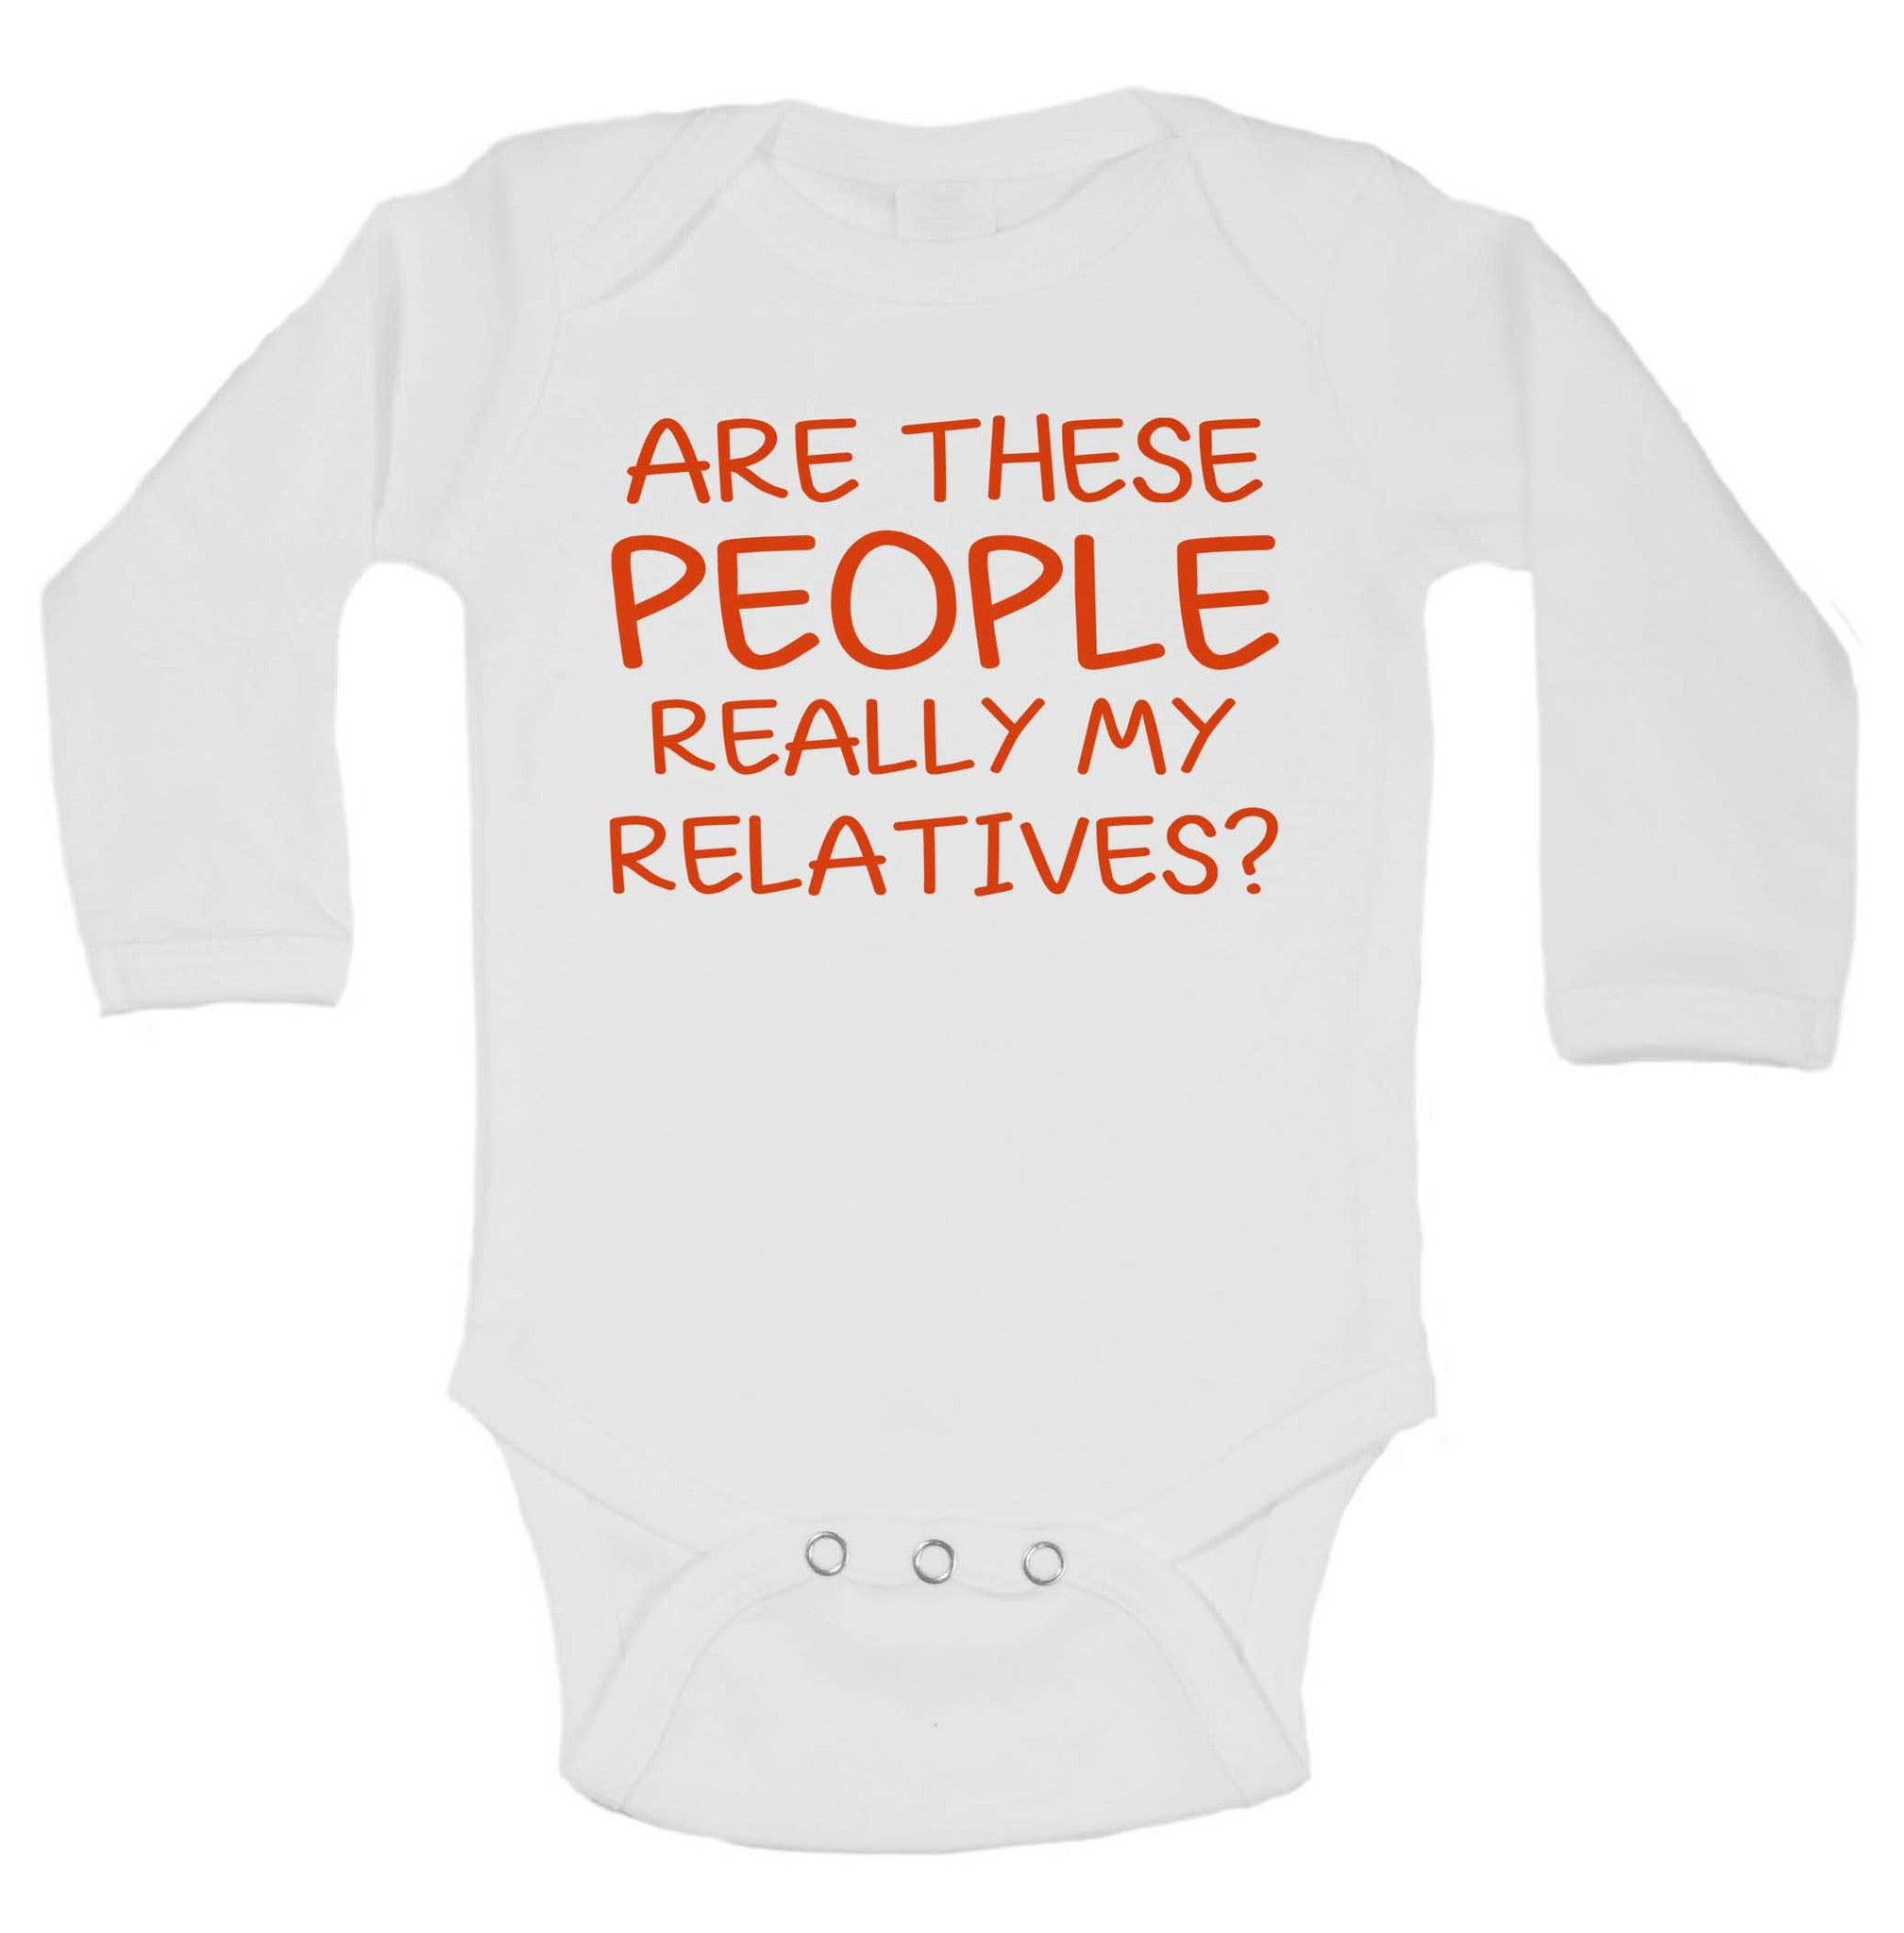 Are These People Really My Relatives? Funny Kids Onesie - 218 - Funny Shirts Tank Tops Burnouts and Triblends  - 1